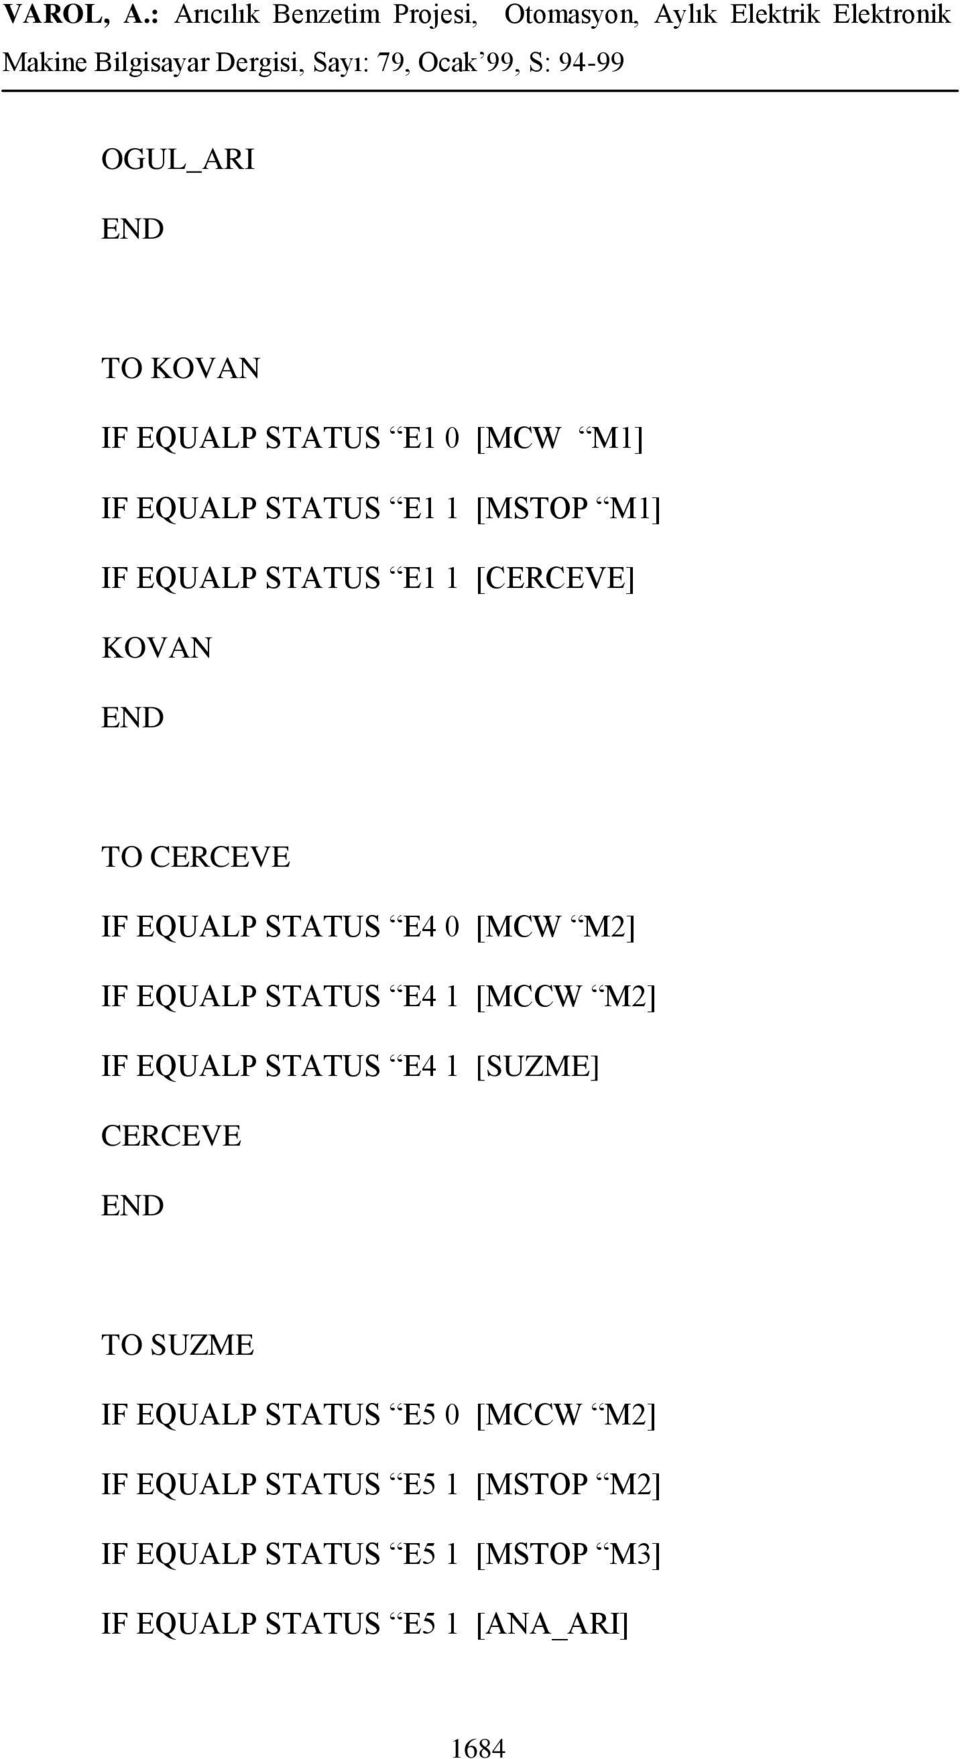 [MCCW M2] IF EQUALP STATUS E4 1 [SUZME] CERCEVE END TO SUZME IF EQUALP STATUS E5 0 [MCCW M2] IF